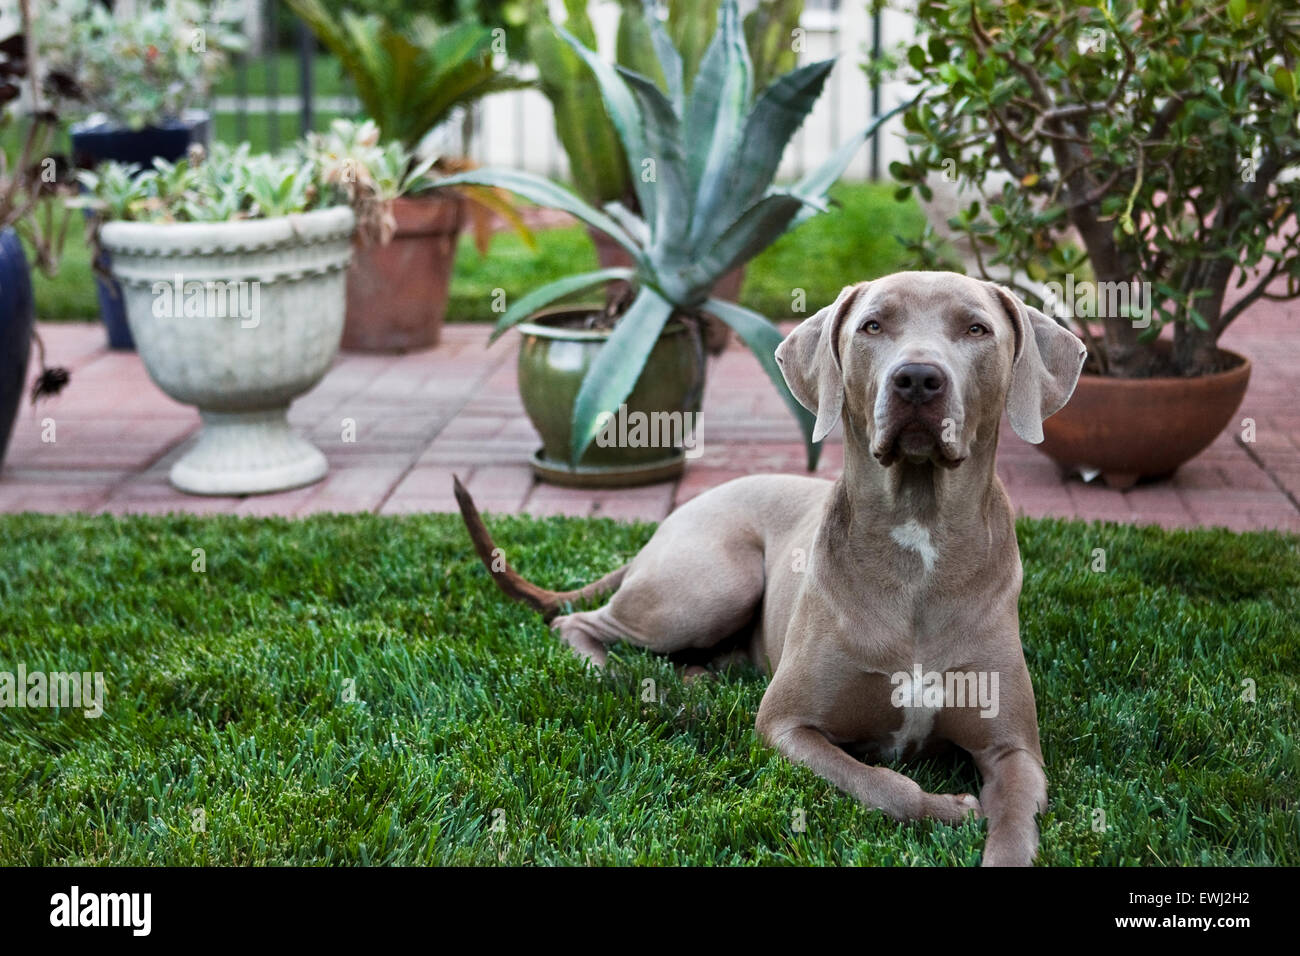 regal weimaraner dog laying down in lush backyard grass in front